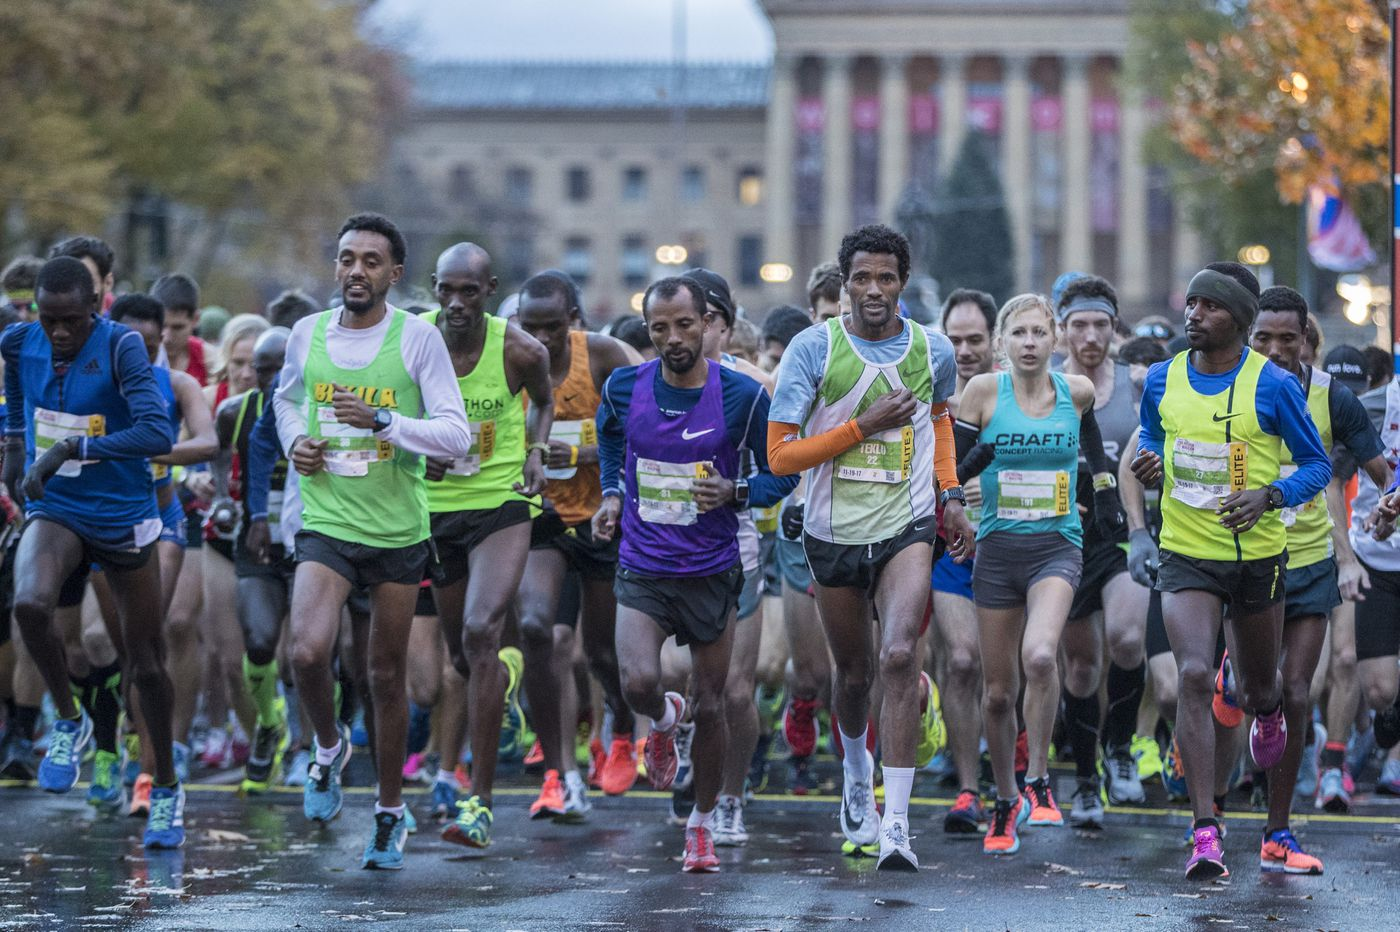 2018 Philadelphia Marathon Weekend road closures